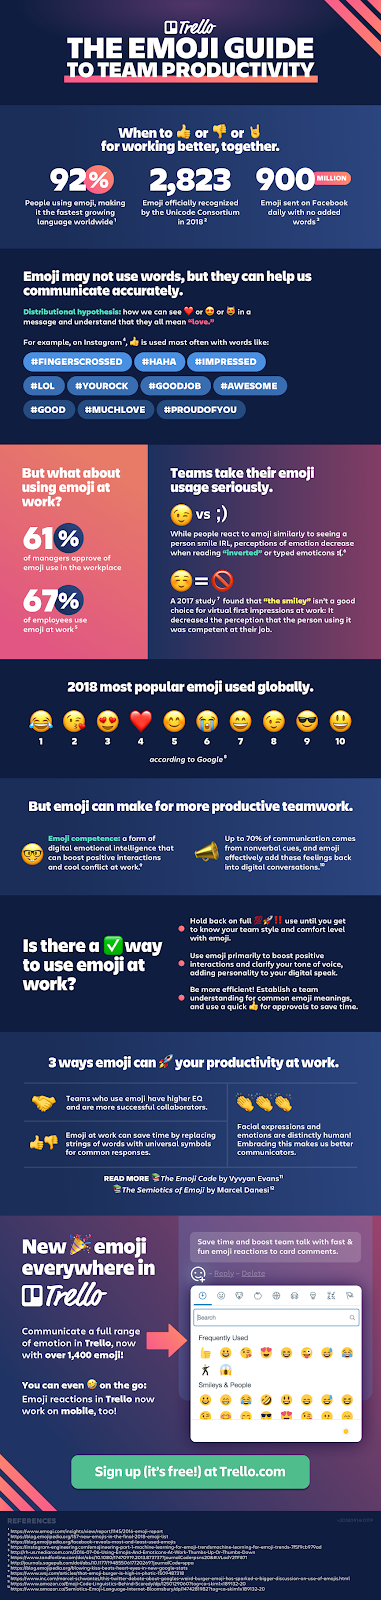 Use Emojis to Make your Team more Productive #infographic